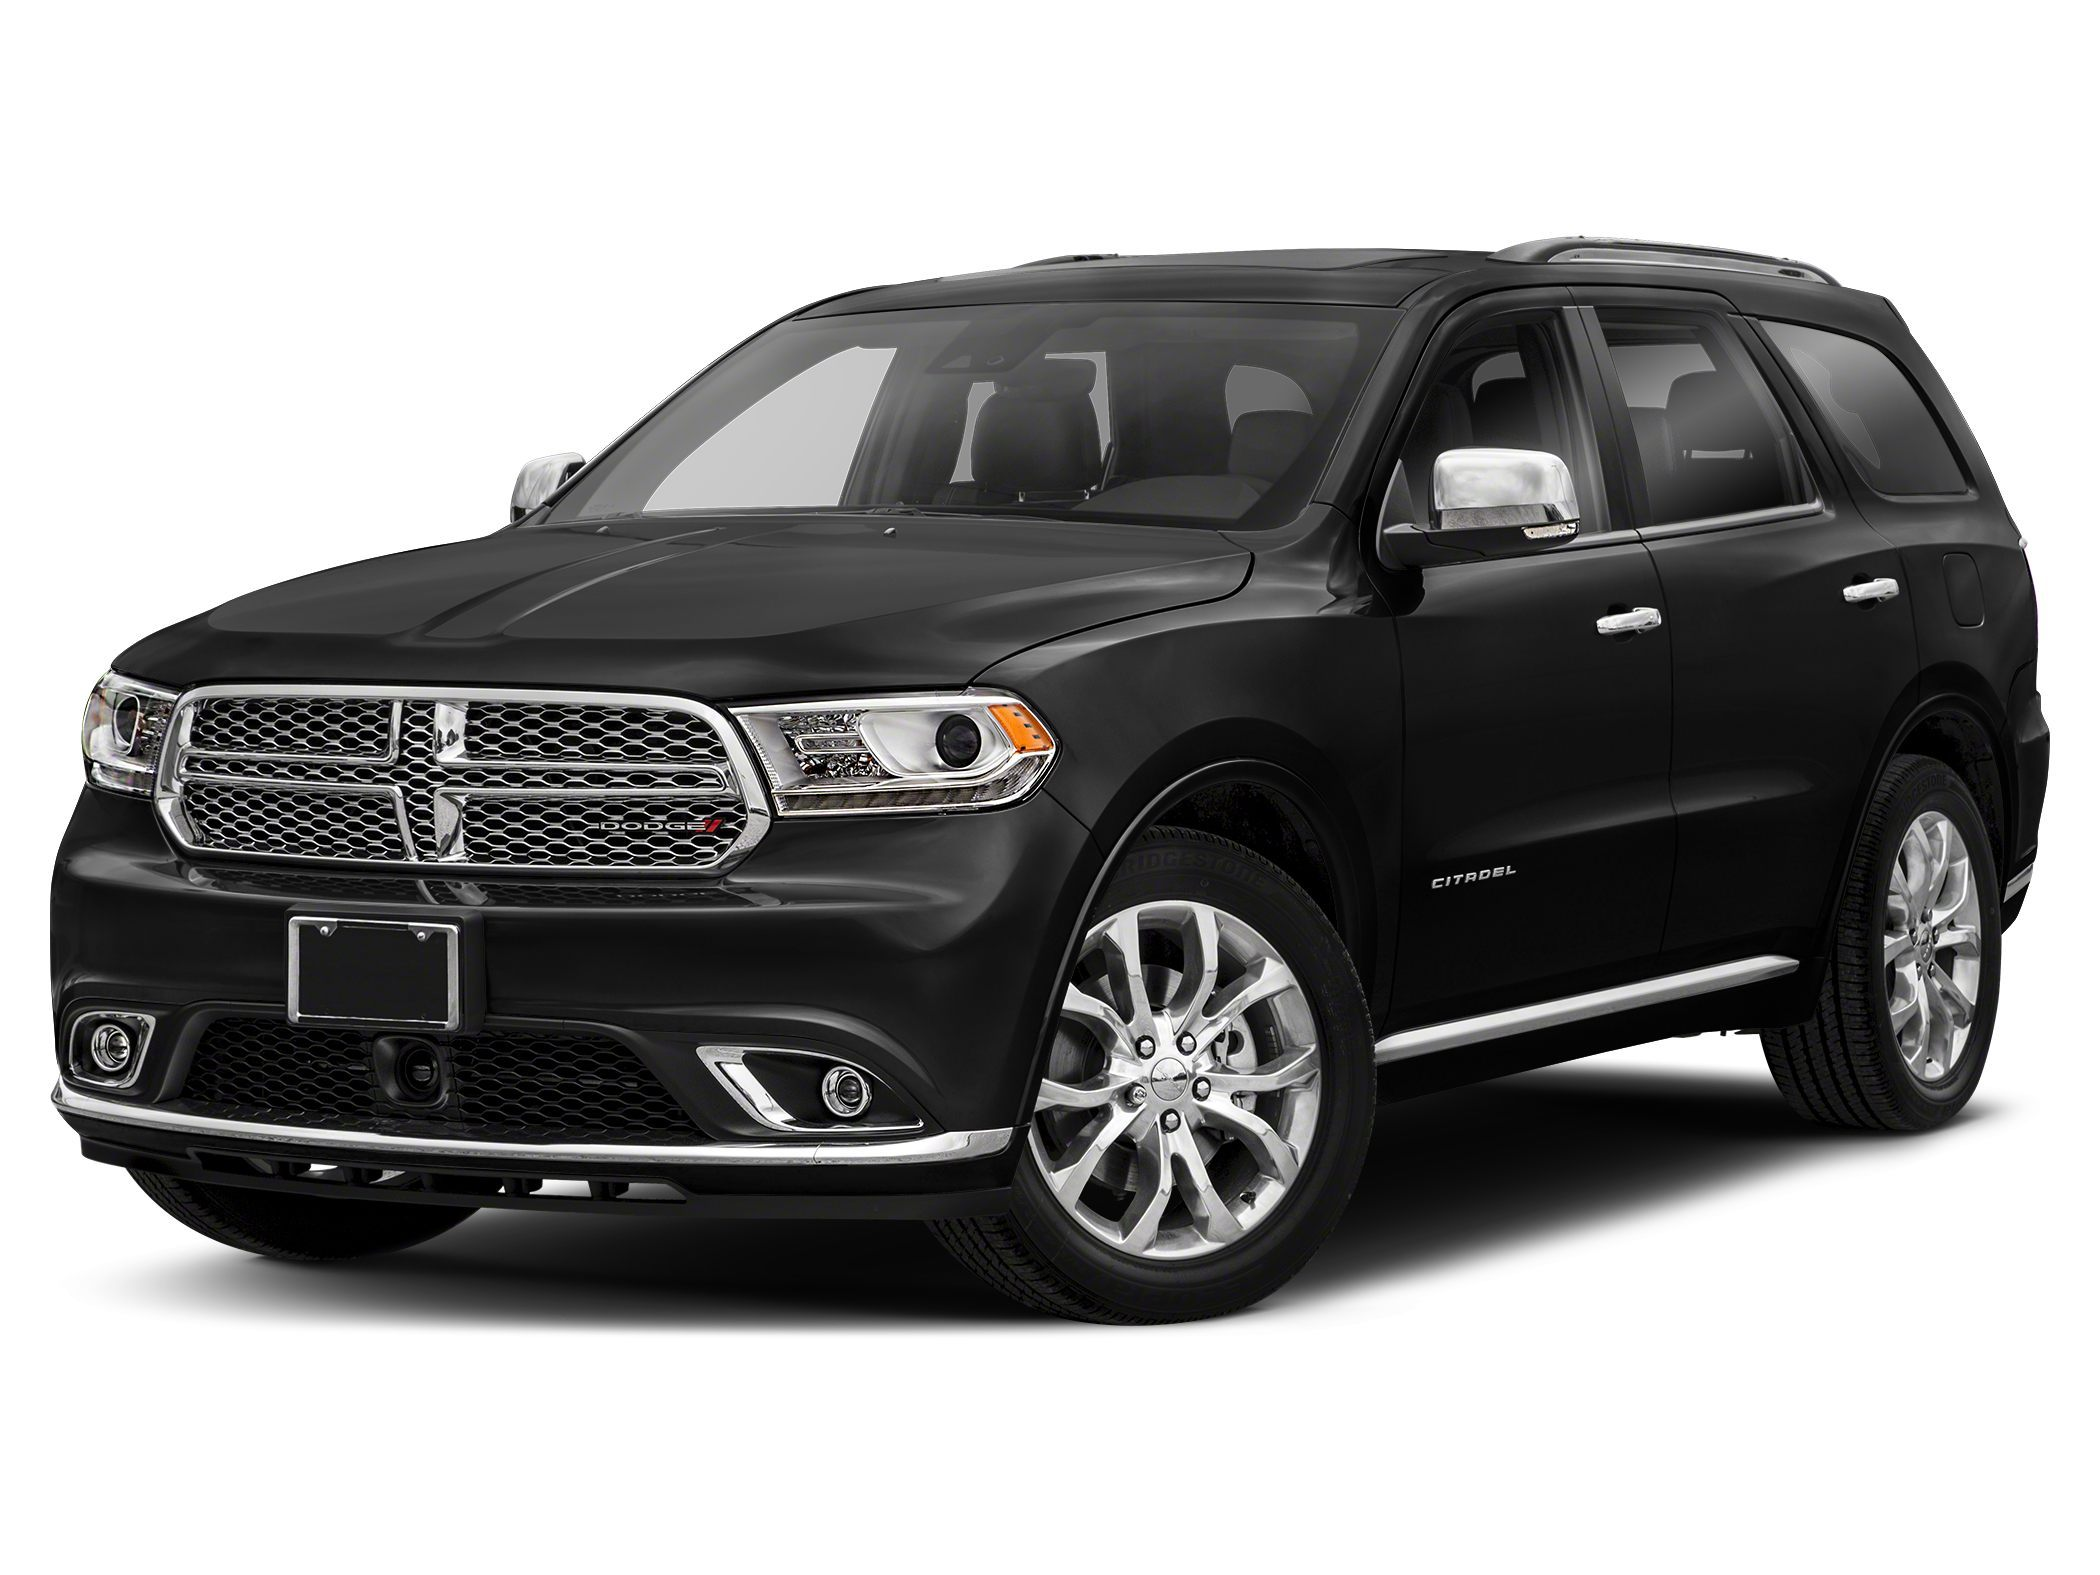 used 2019 Dodge Durango car, priced at $44,900